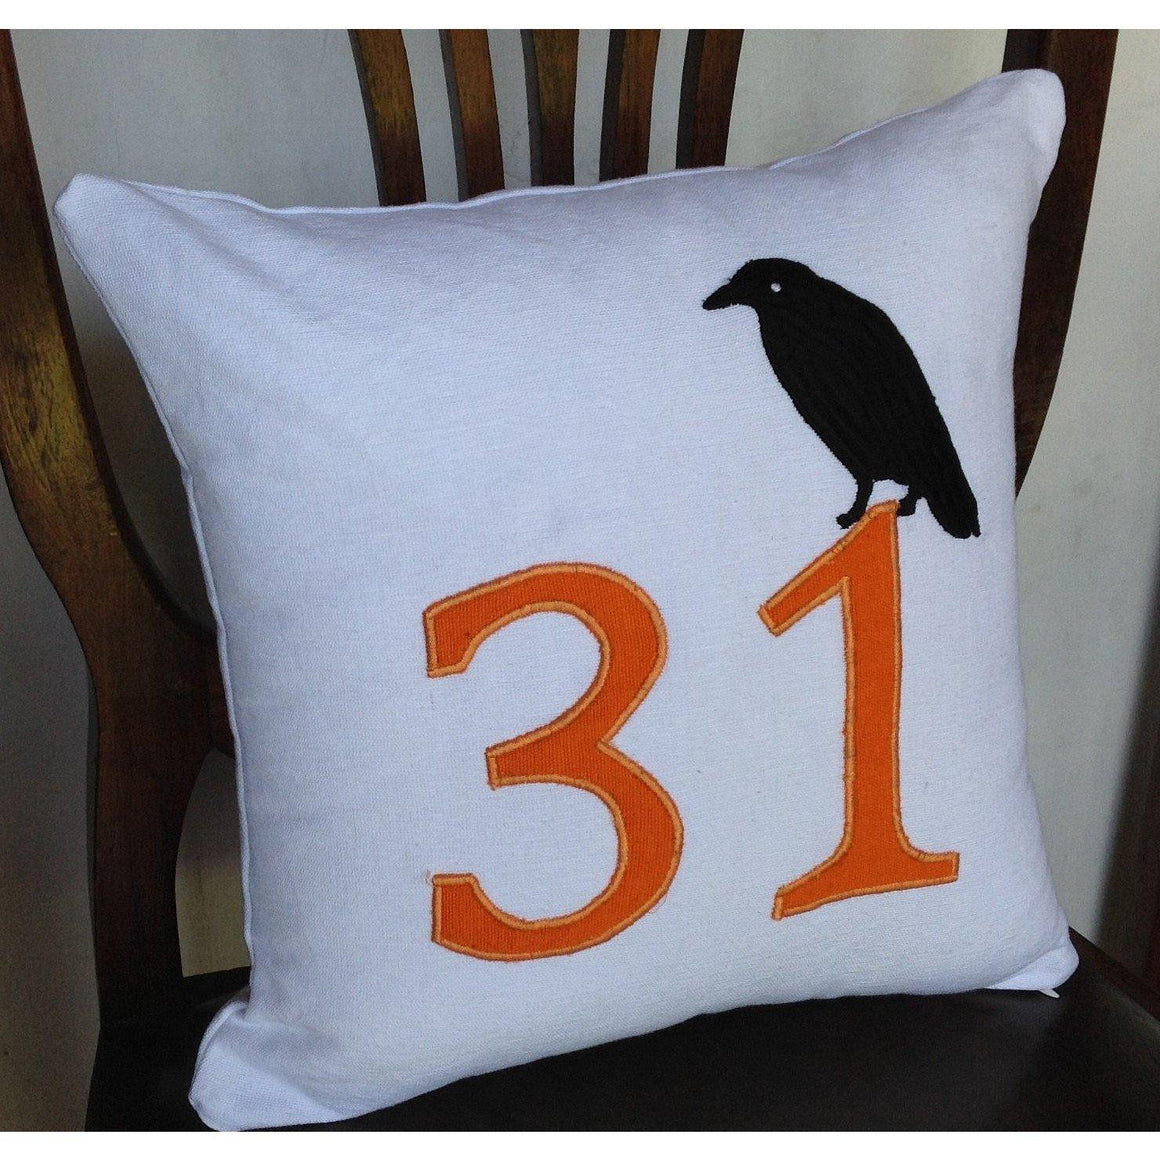 Holiday Pillow Cover, Halloween 14 Inches pillow cover-Fall Pillow Cover-October 31st White Pillow Cover-IN STOCK - Snazzy Living